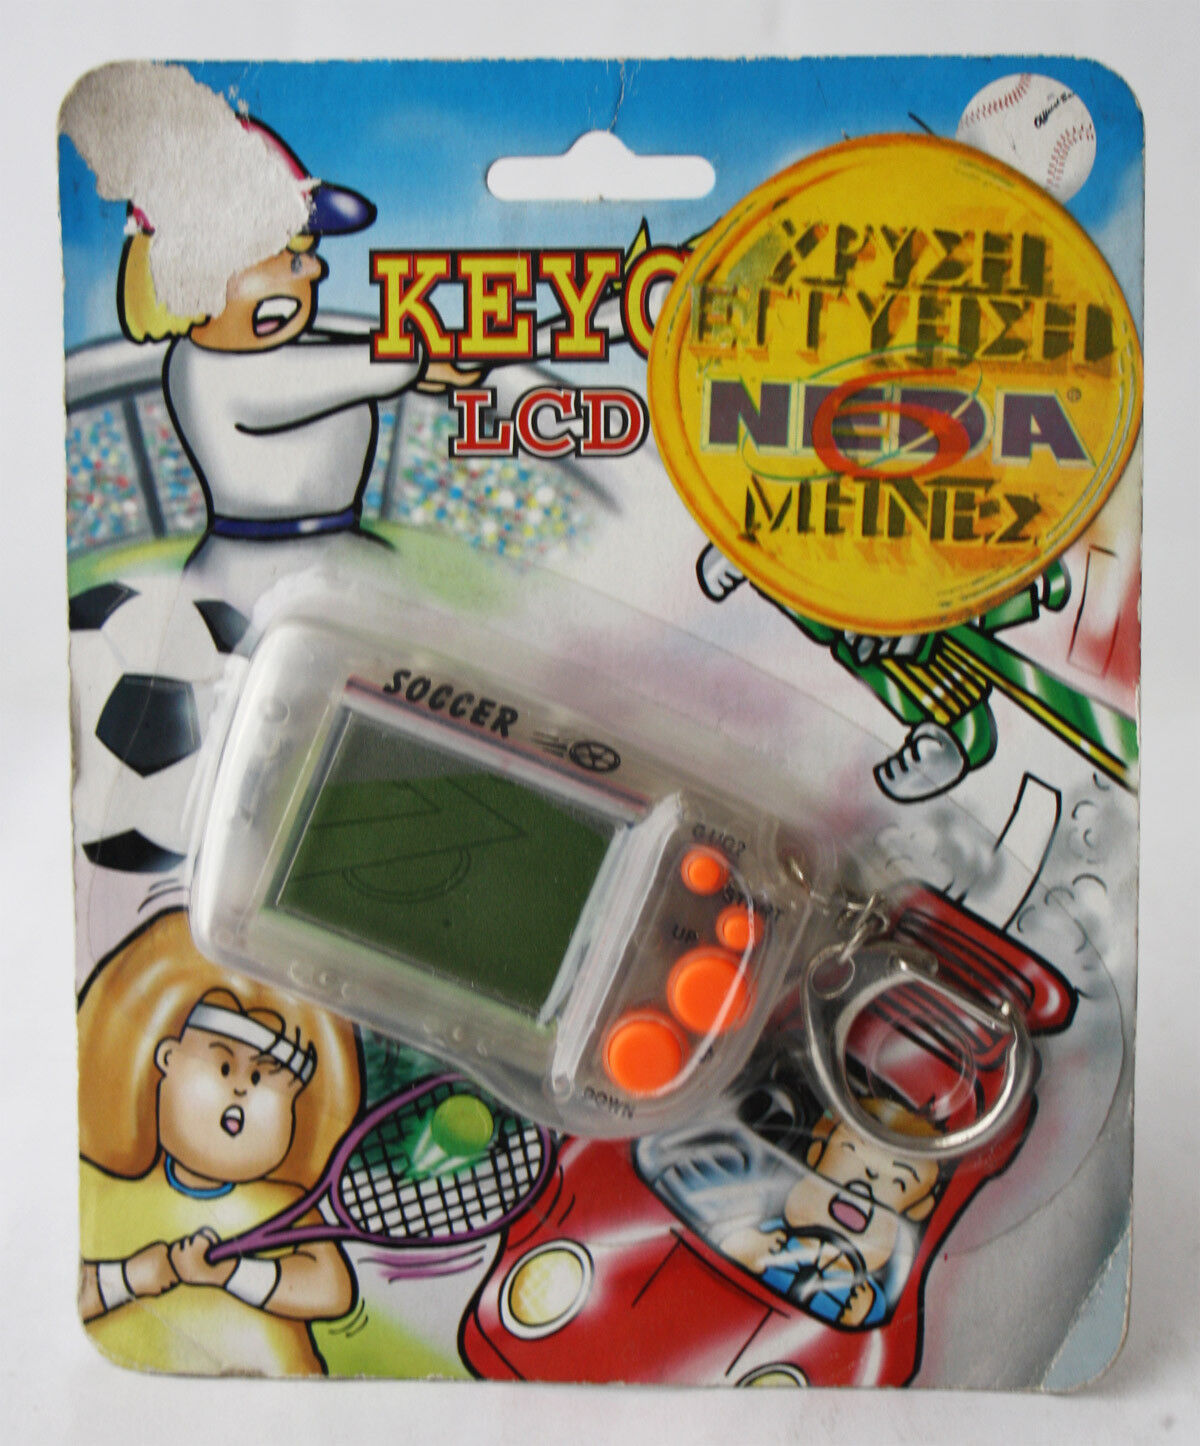 RARE VINTAGE 90'S SOCCER LCD HANDHELD ELECTRONIC GAME KEYCHAIN NEW SEALED